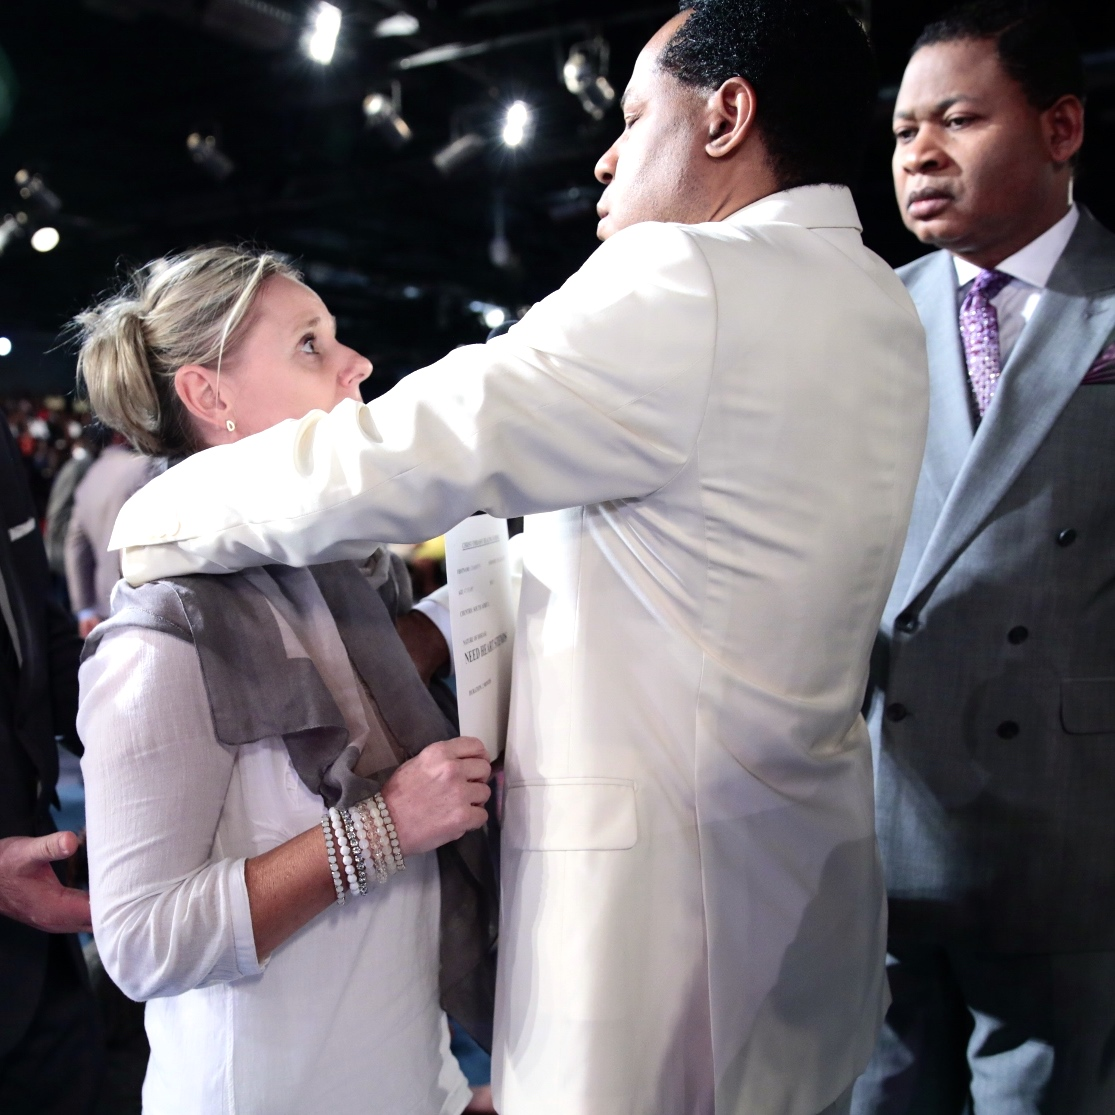 Pastor Chris Ministering to The Sick